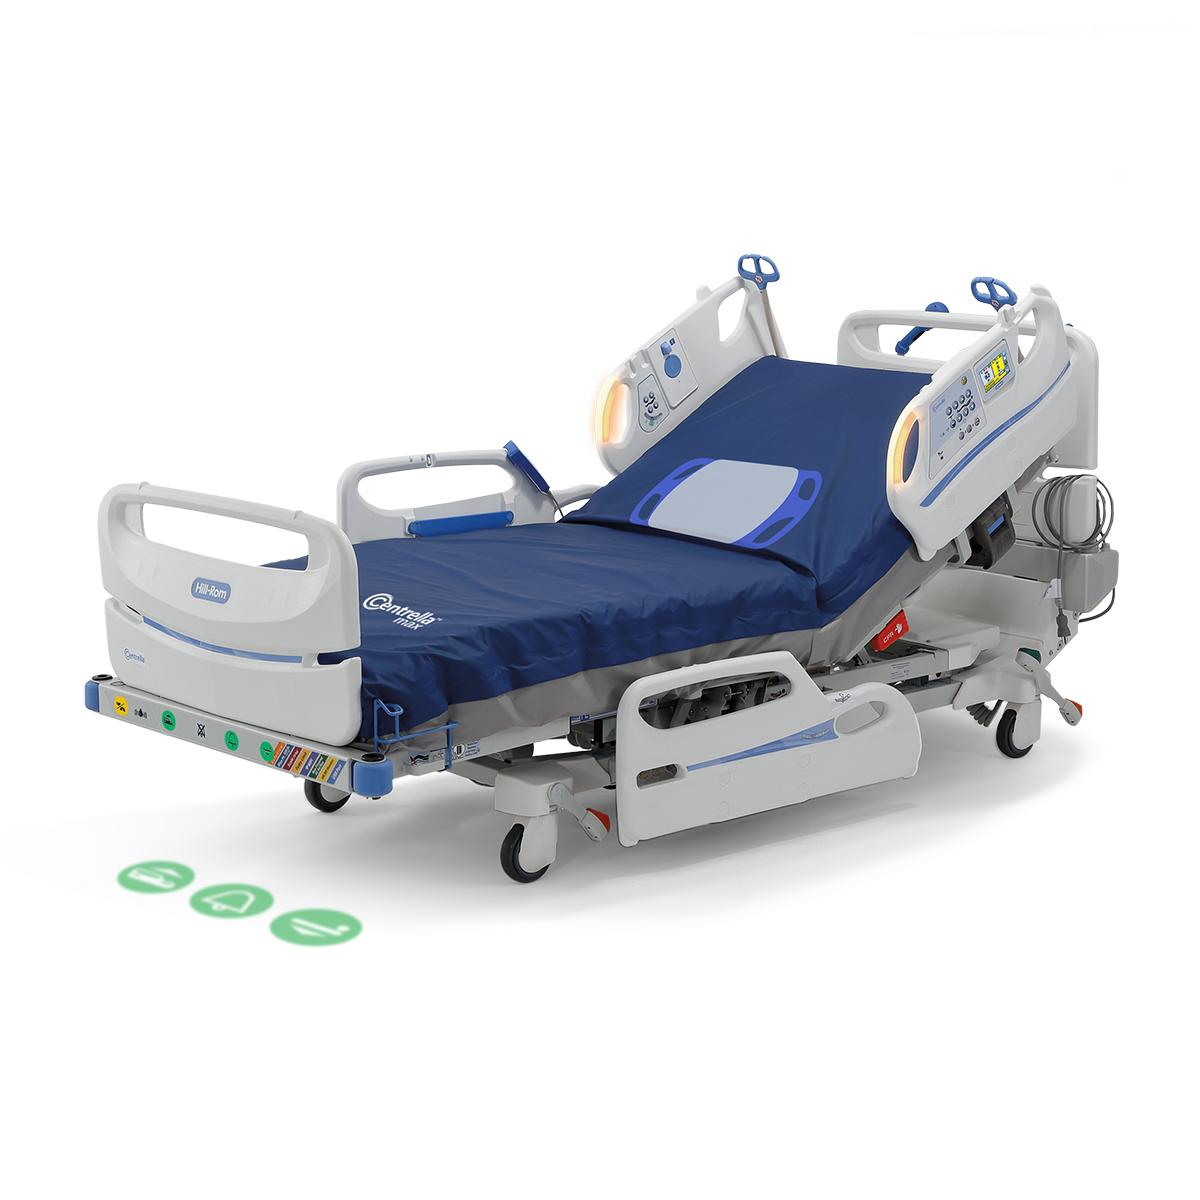 Centrella Smart+ Bed with EarlySense monitoring, right side view, displaying yellow alert lights